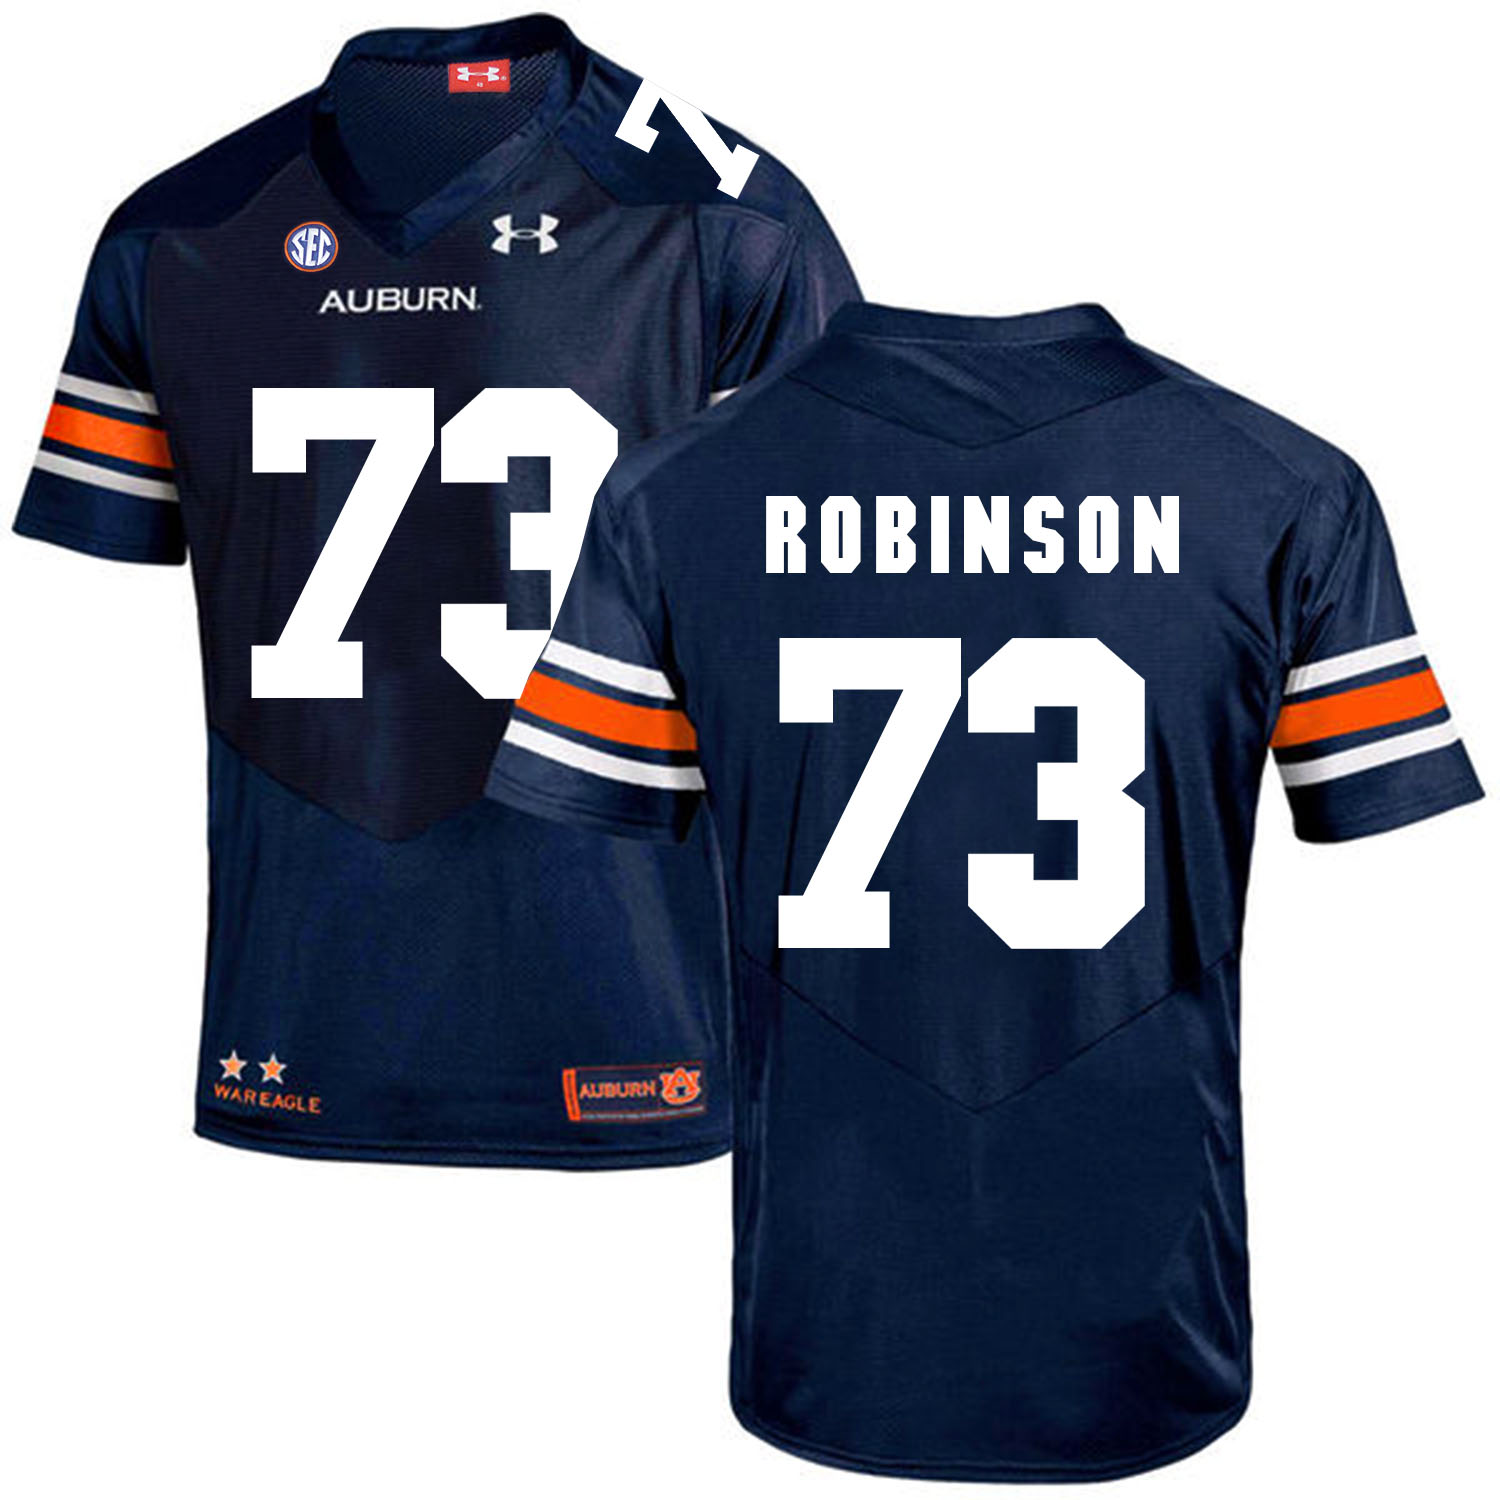 Auburn Tigers 73 Greg Robinson Navy College Football Jersey